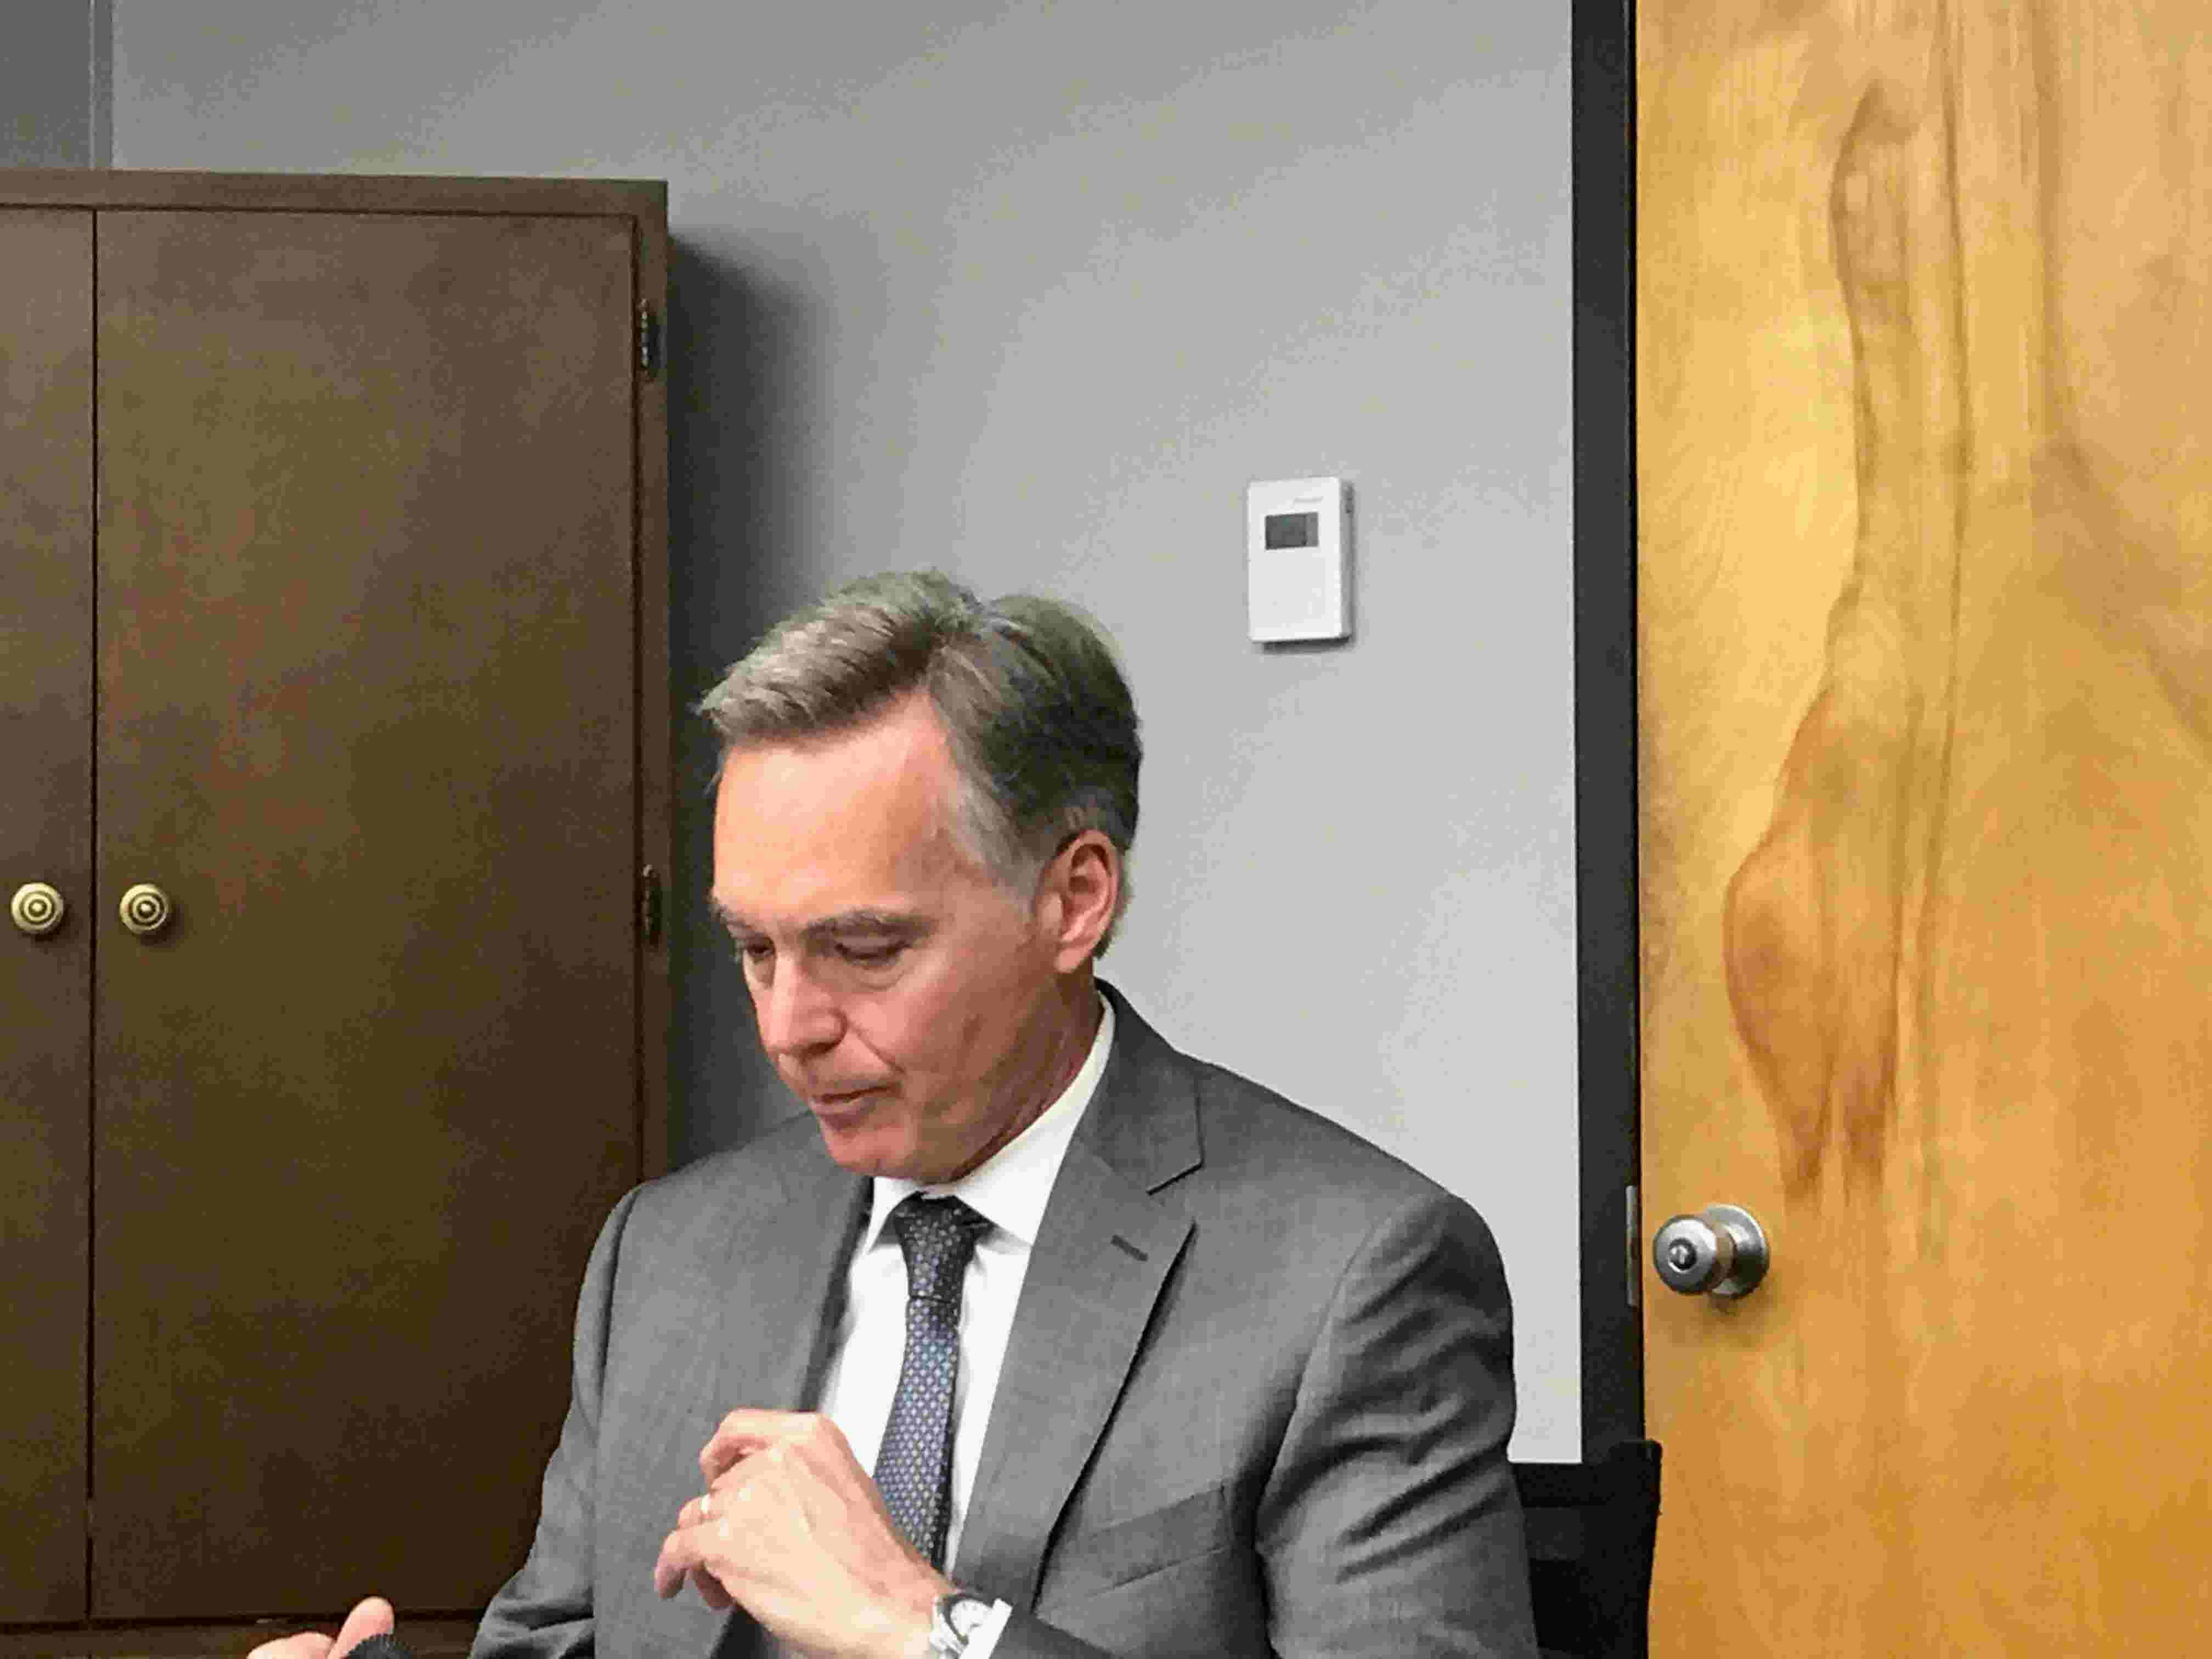 Pay raises for Nashville public school employees requested as part of the  2019-2020 budget proposal